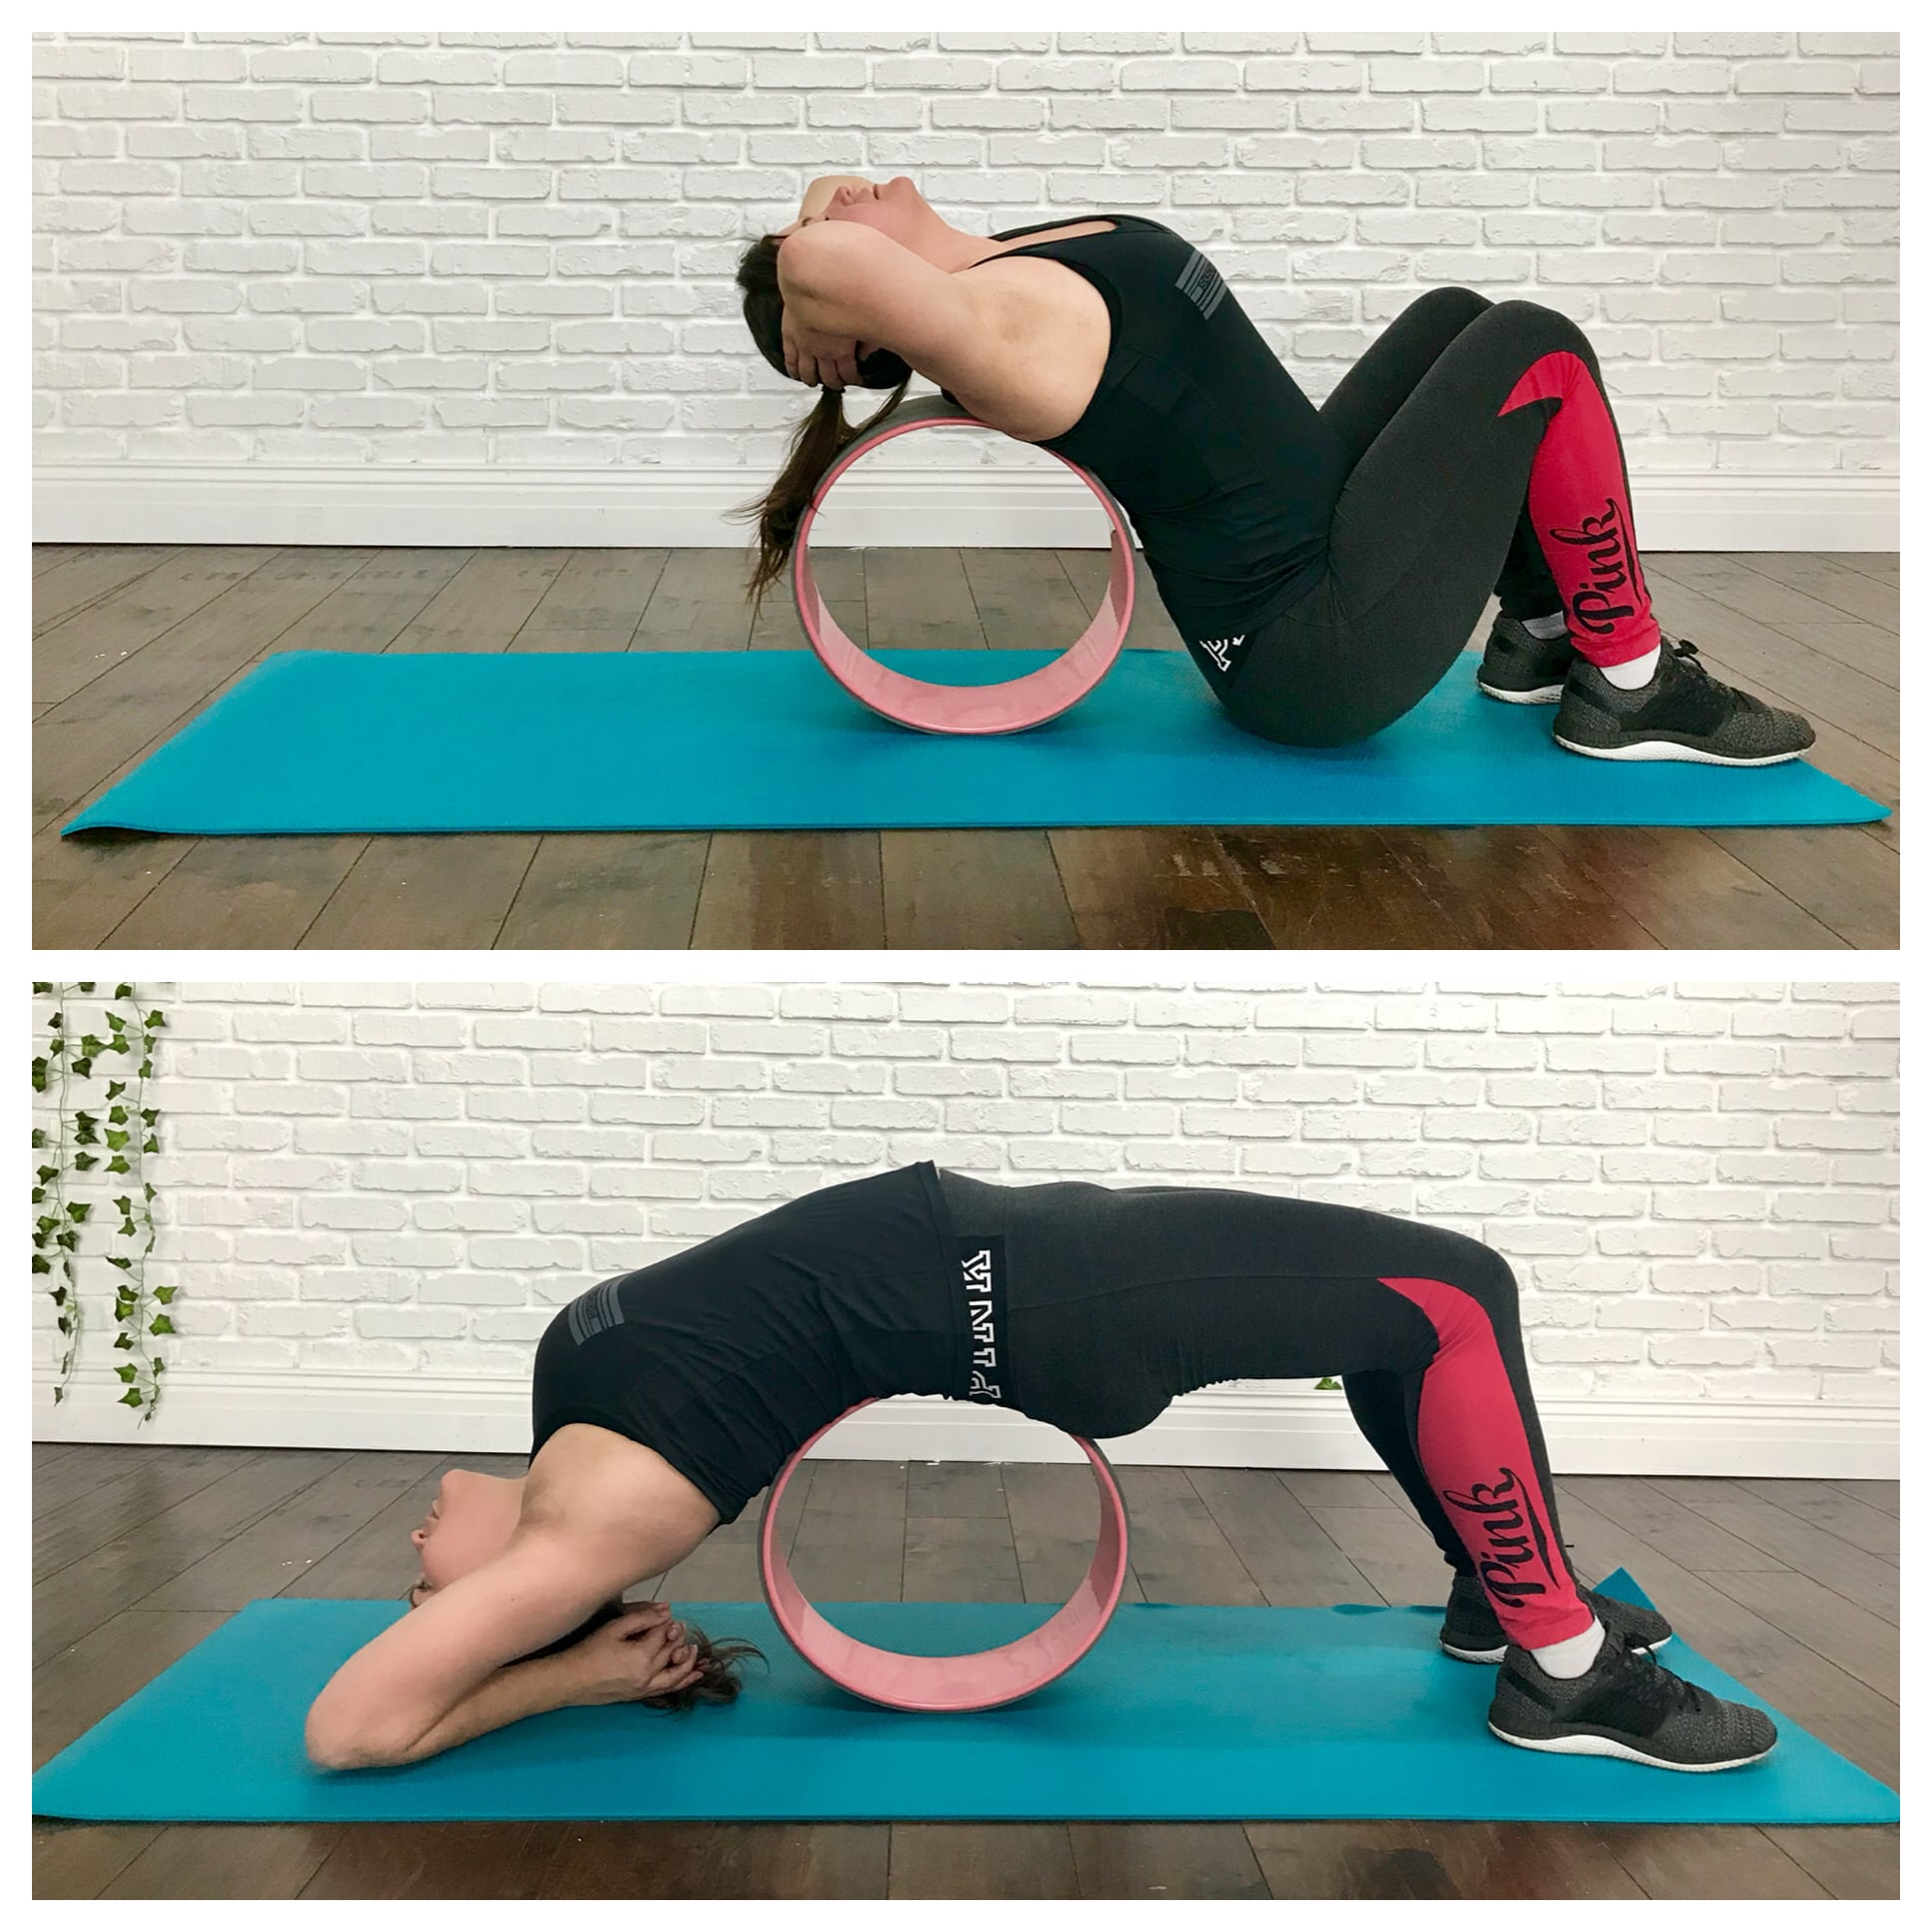 How To Use A Yoga Wheel Popsugar Fitness Middle East